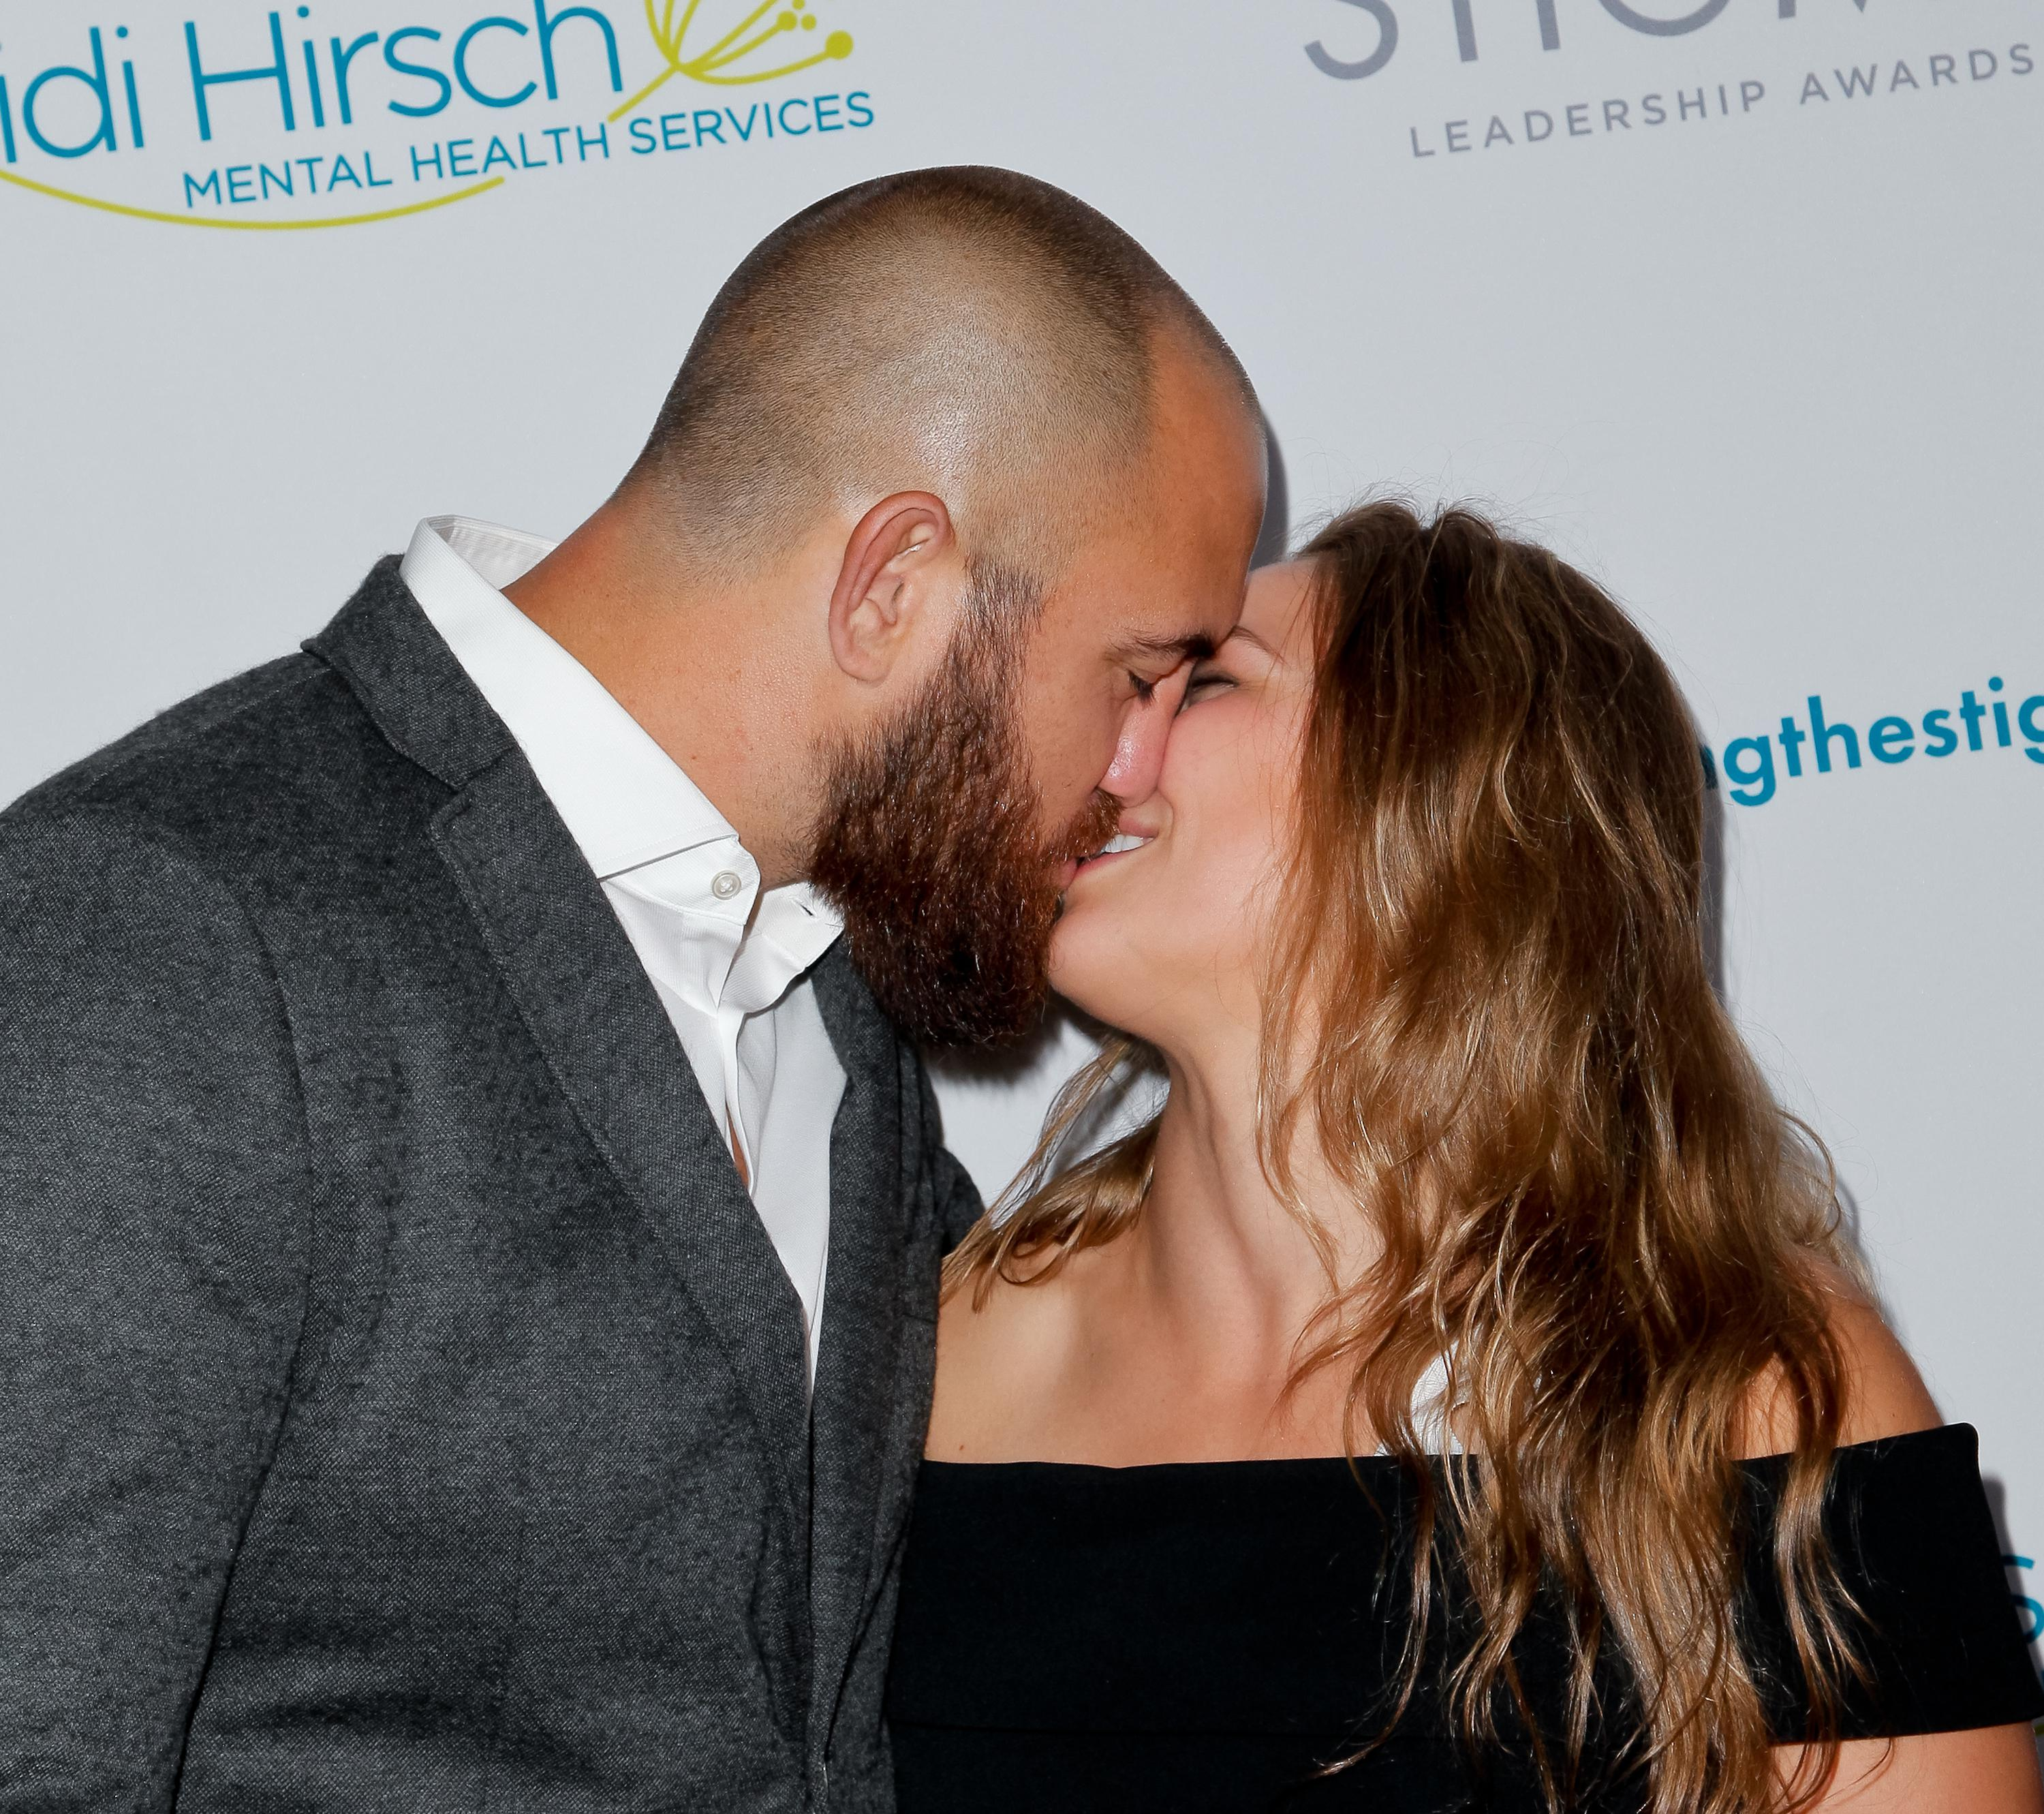 Travis Browne and Ronda Rousey married last summer